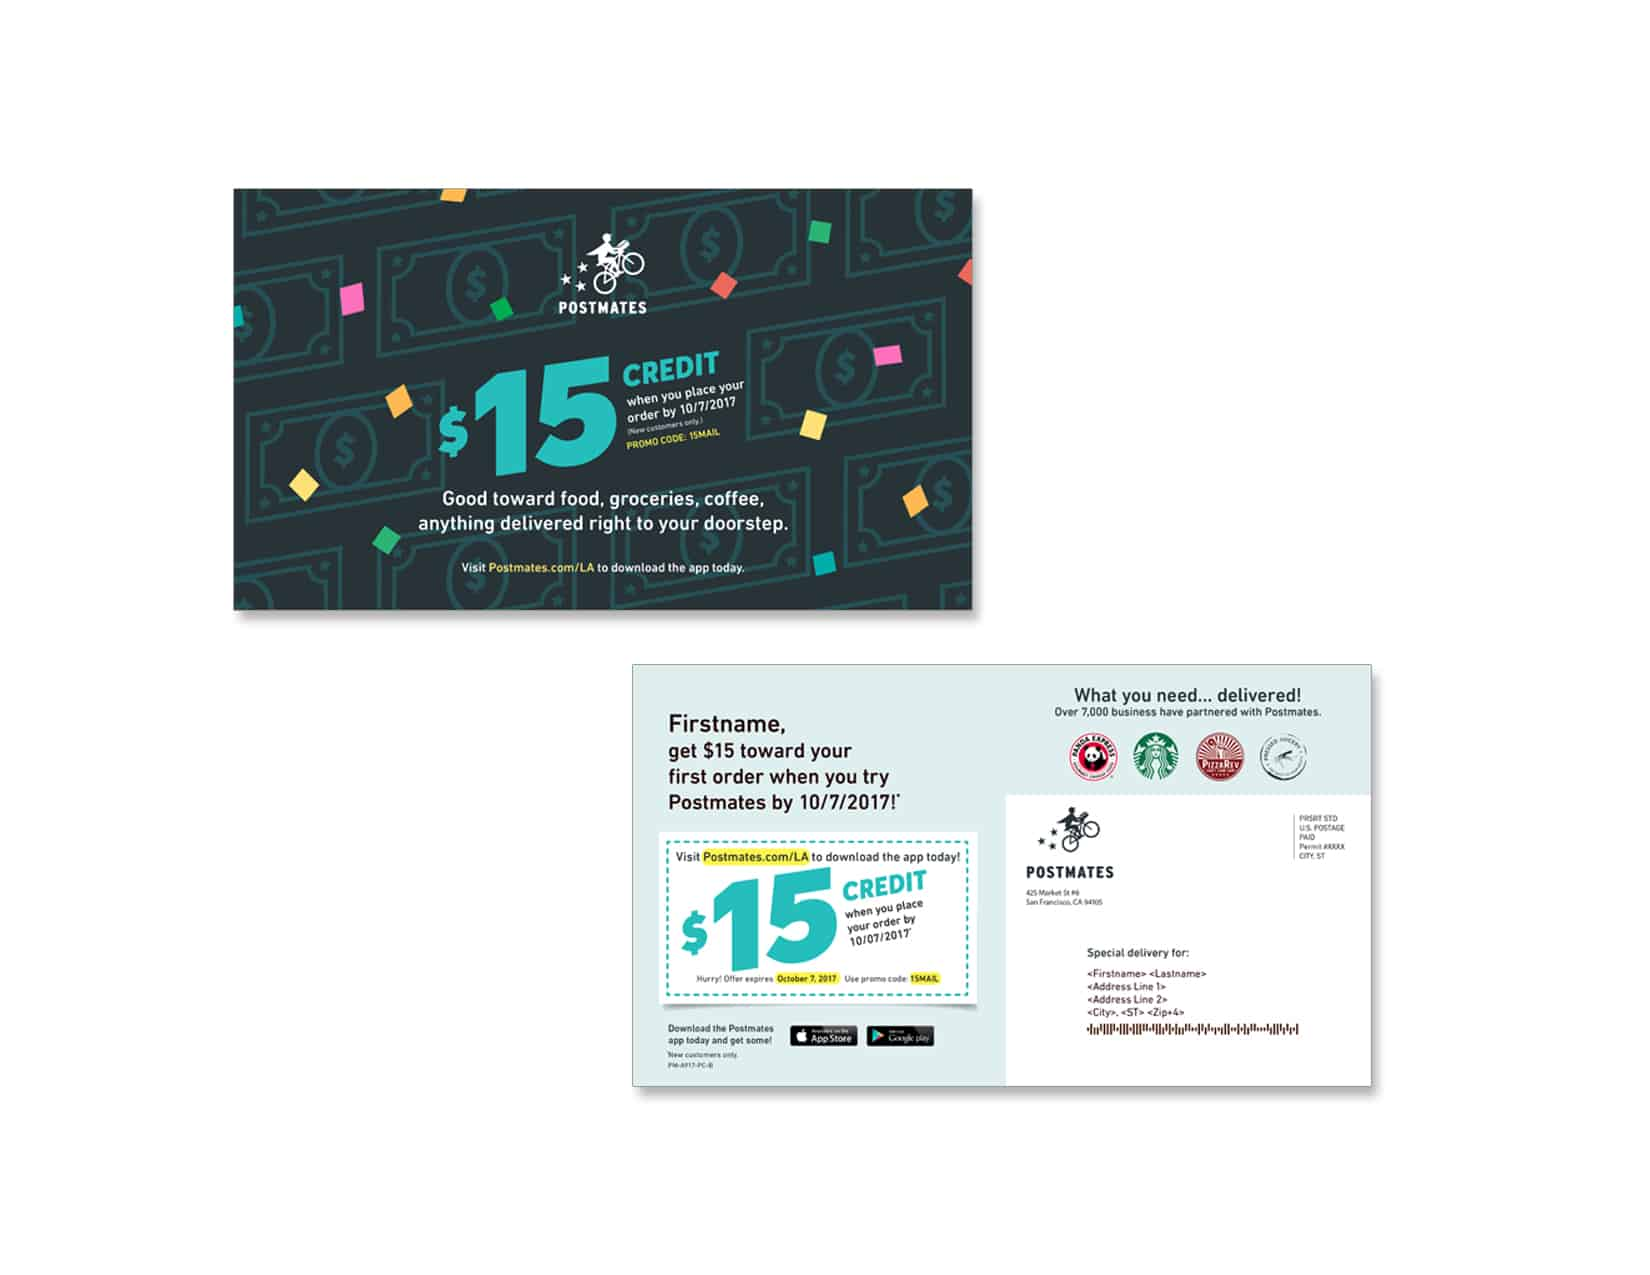 Postmates 1229-0817-2 - Direct Mail and Direct Marketing